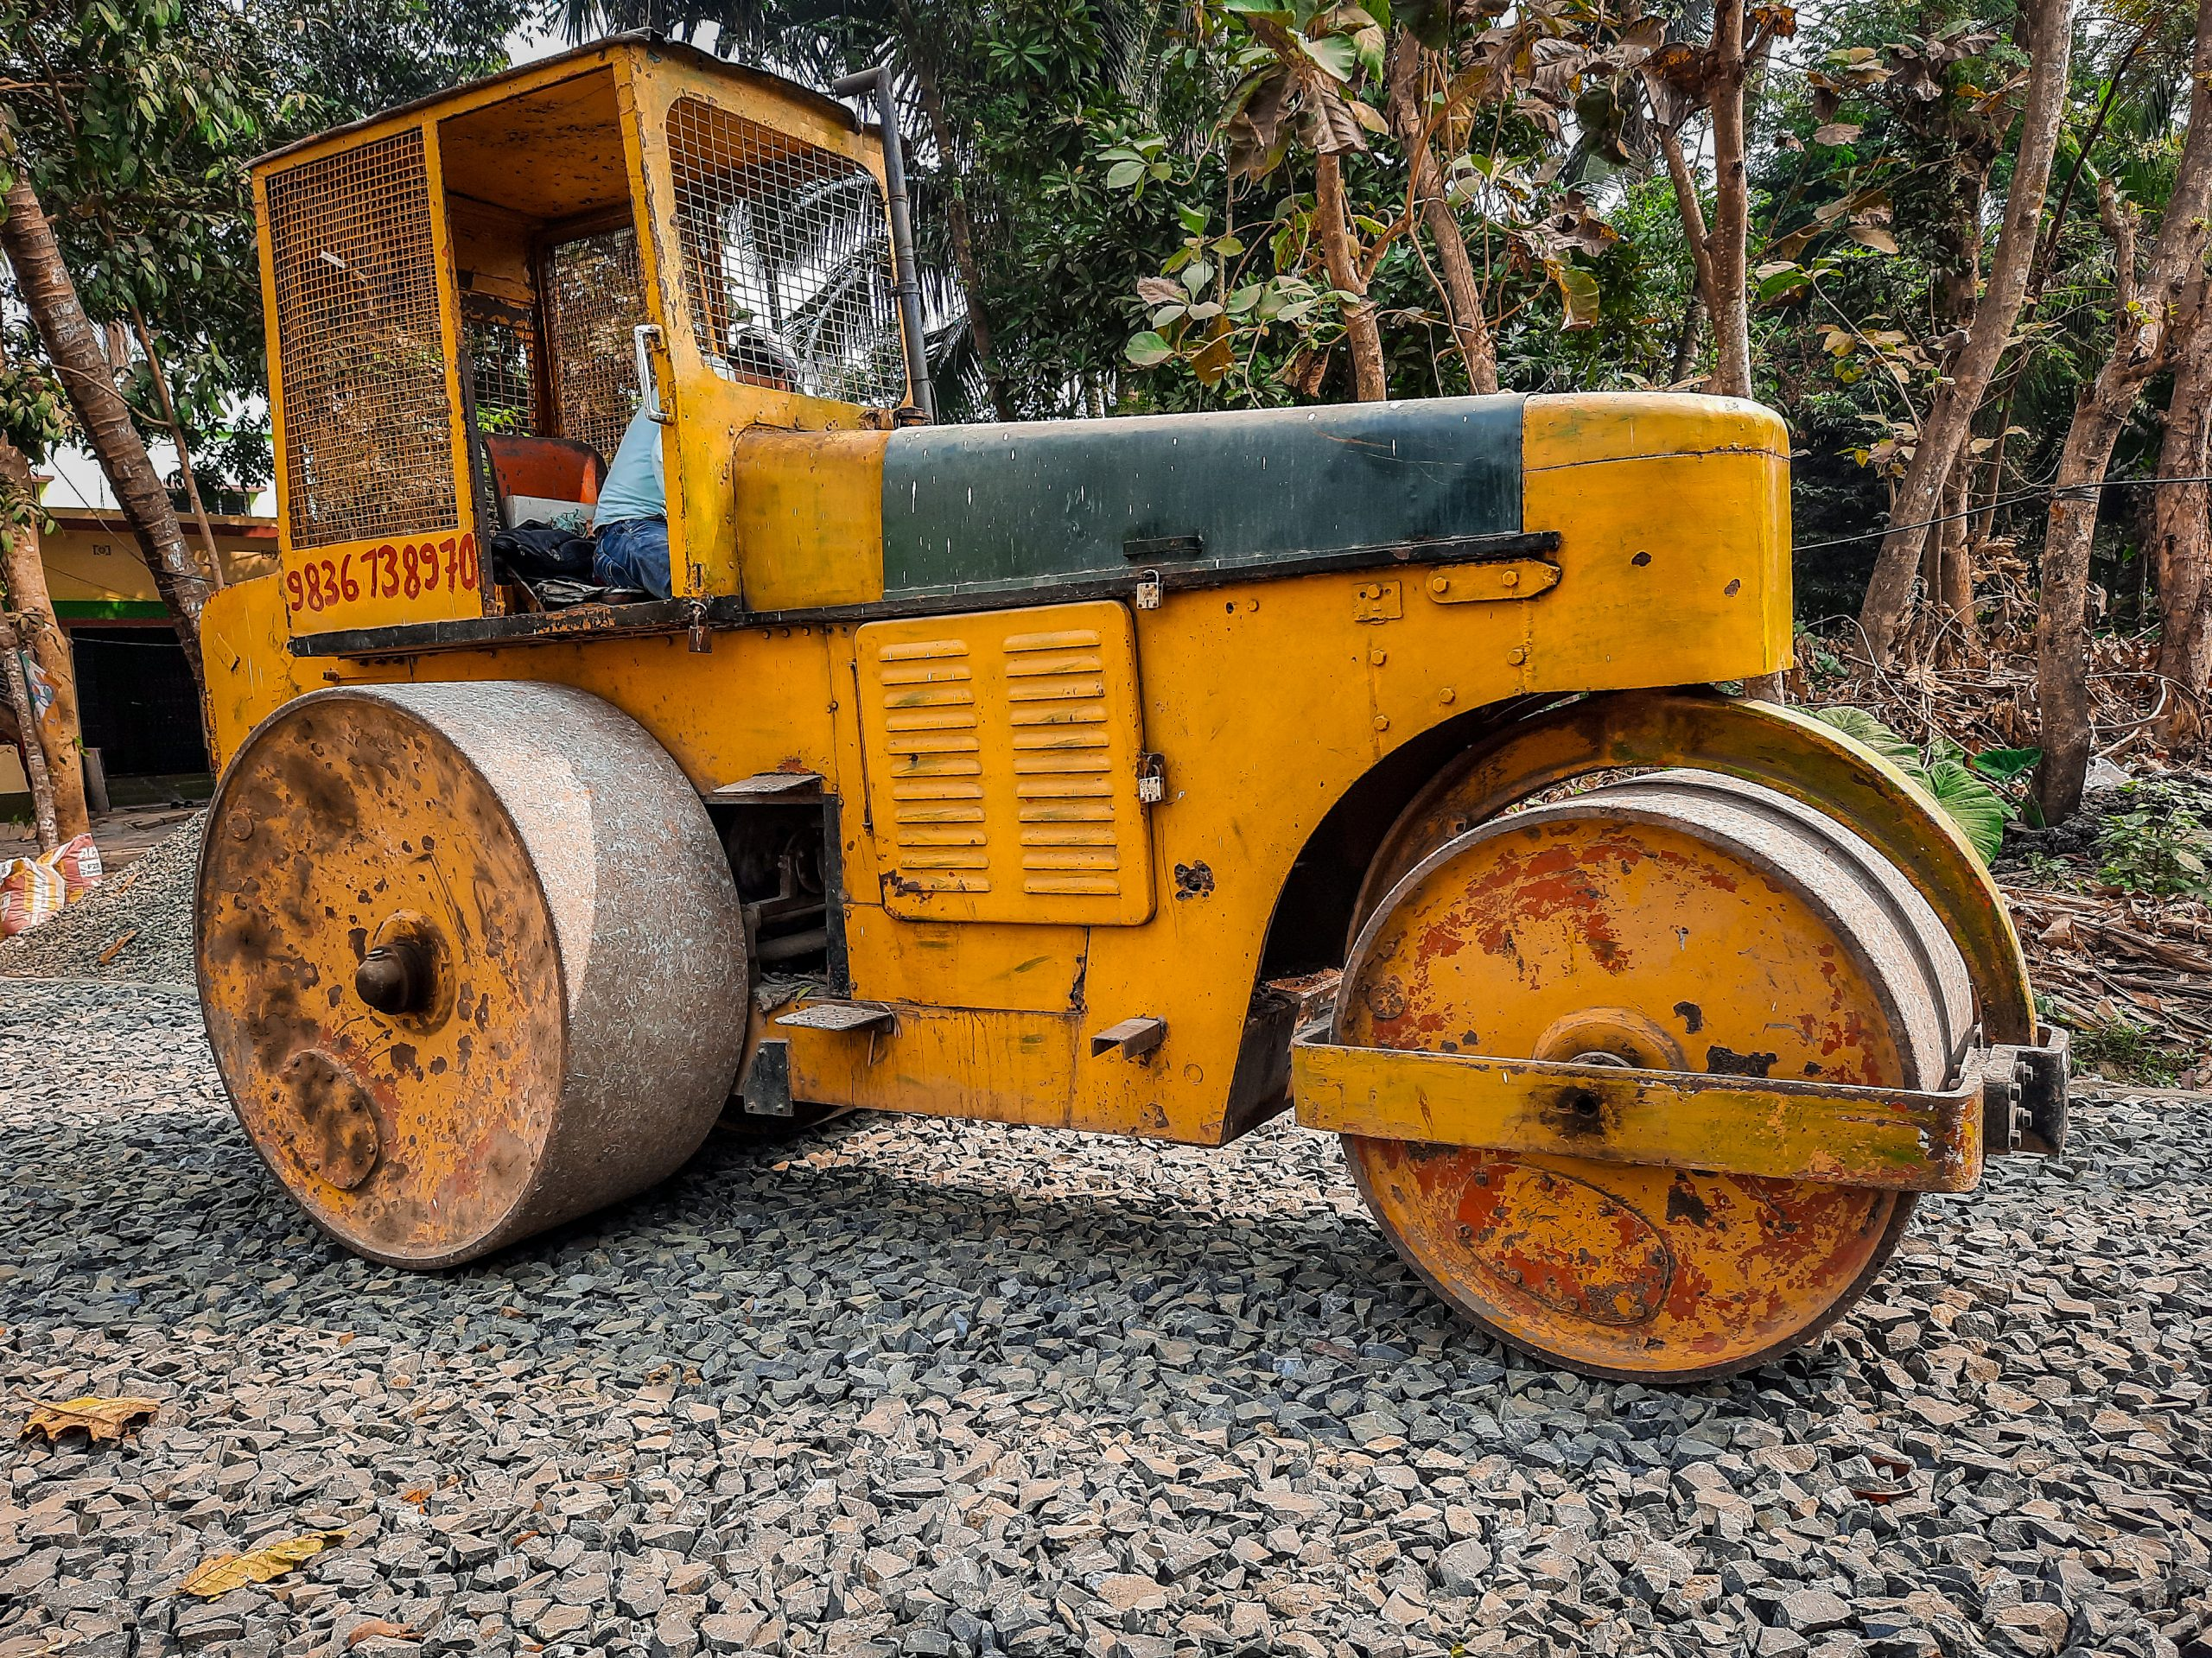 A road roller vehicle